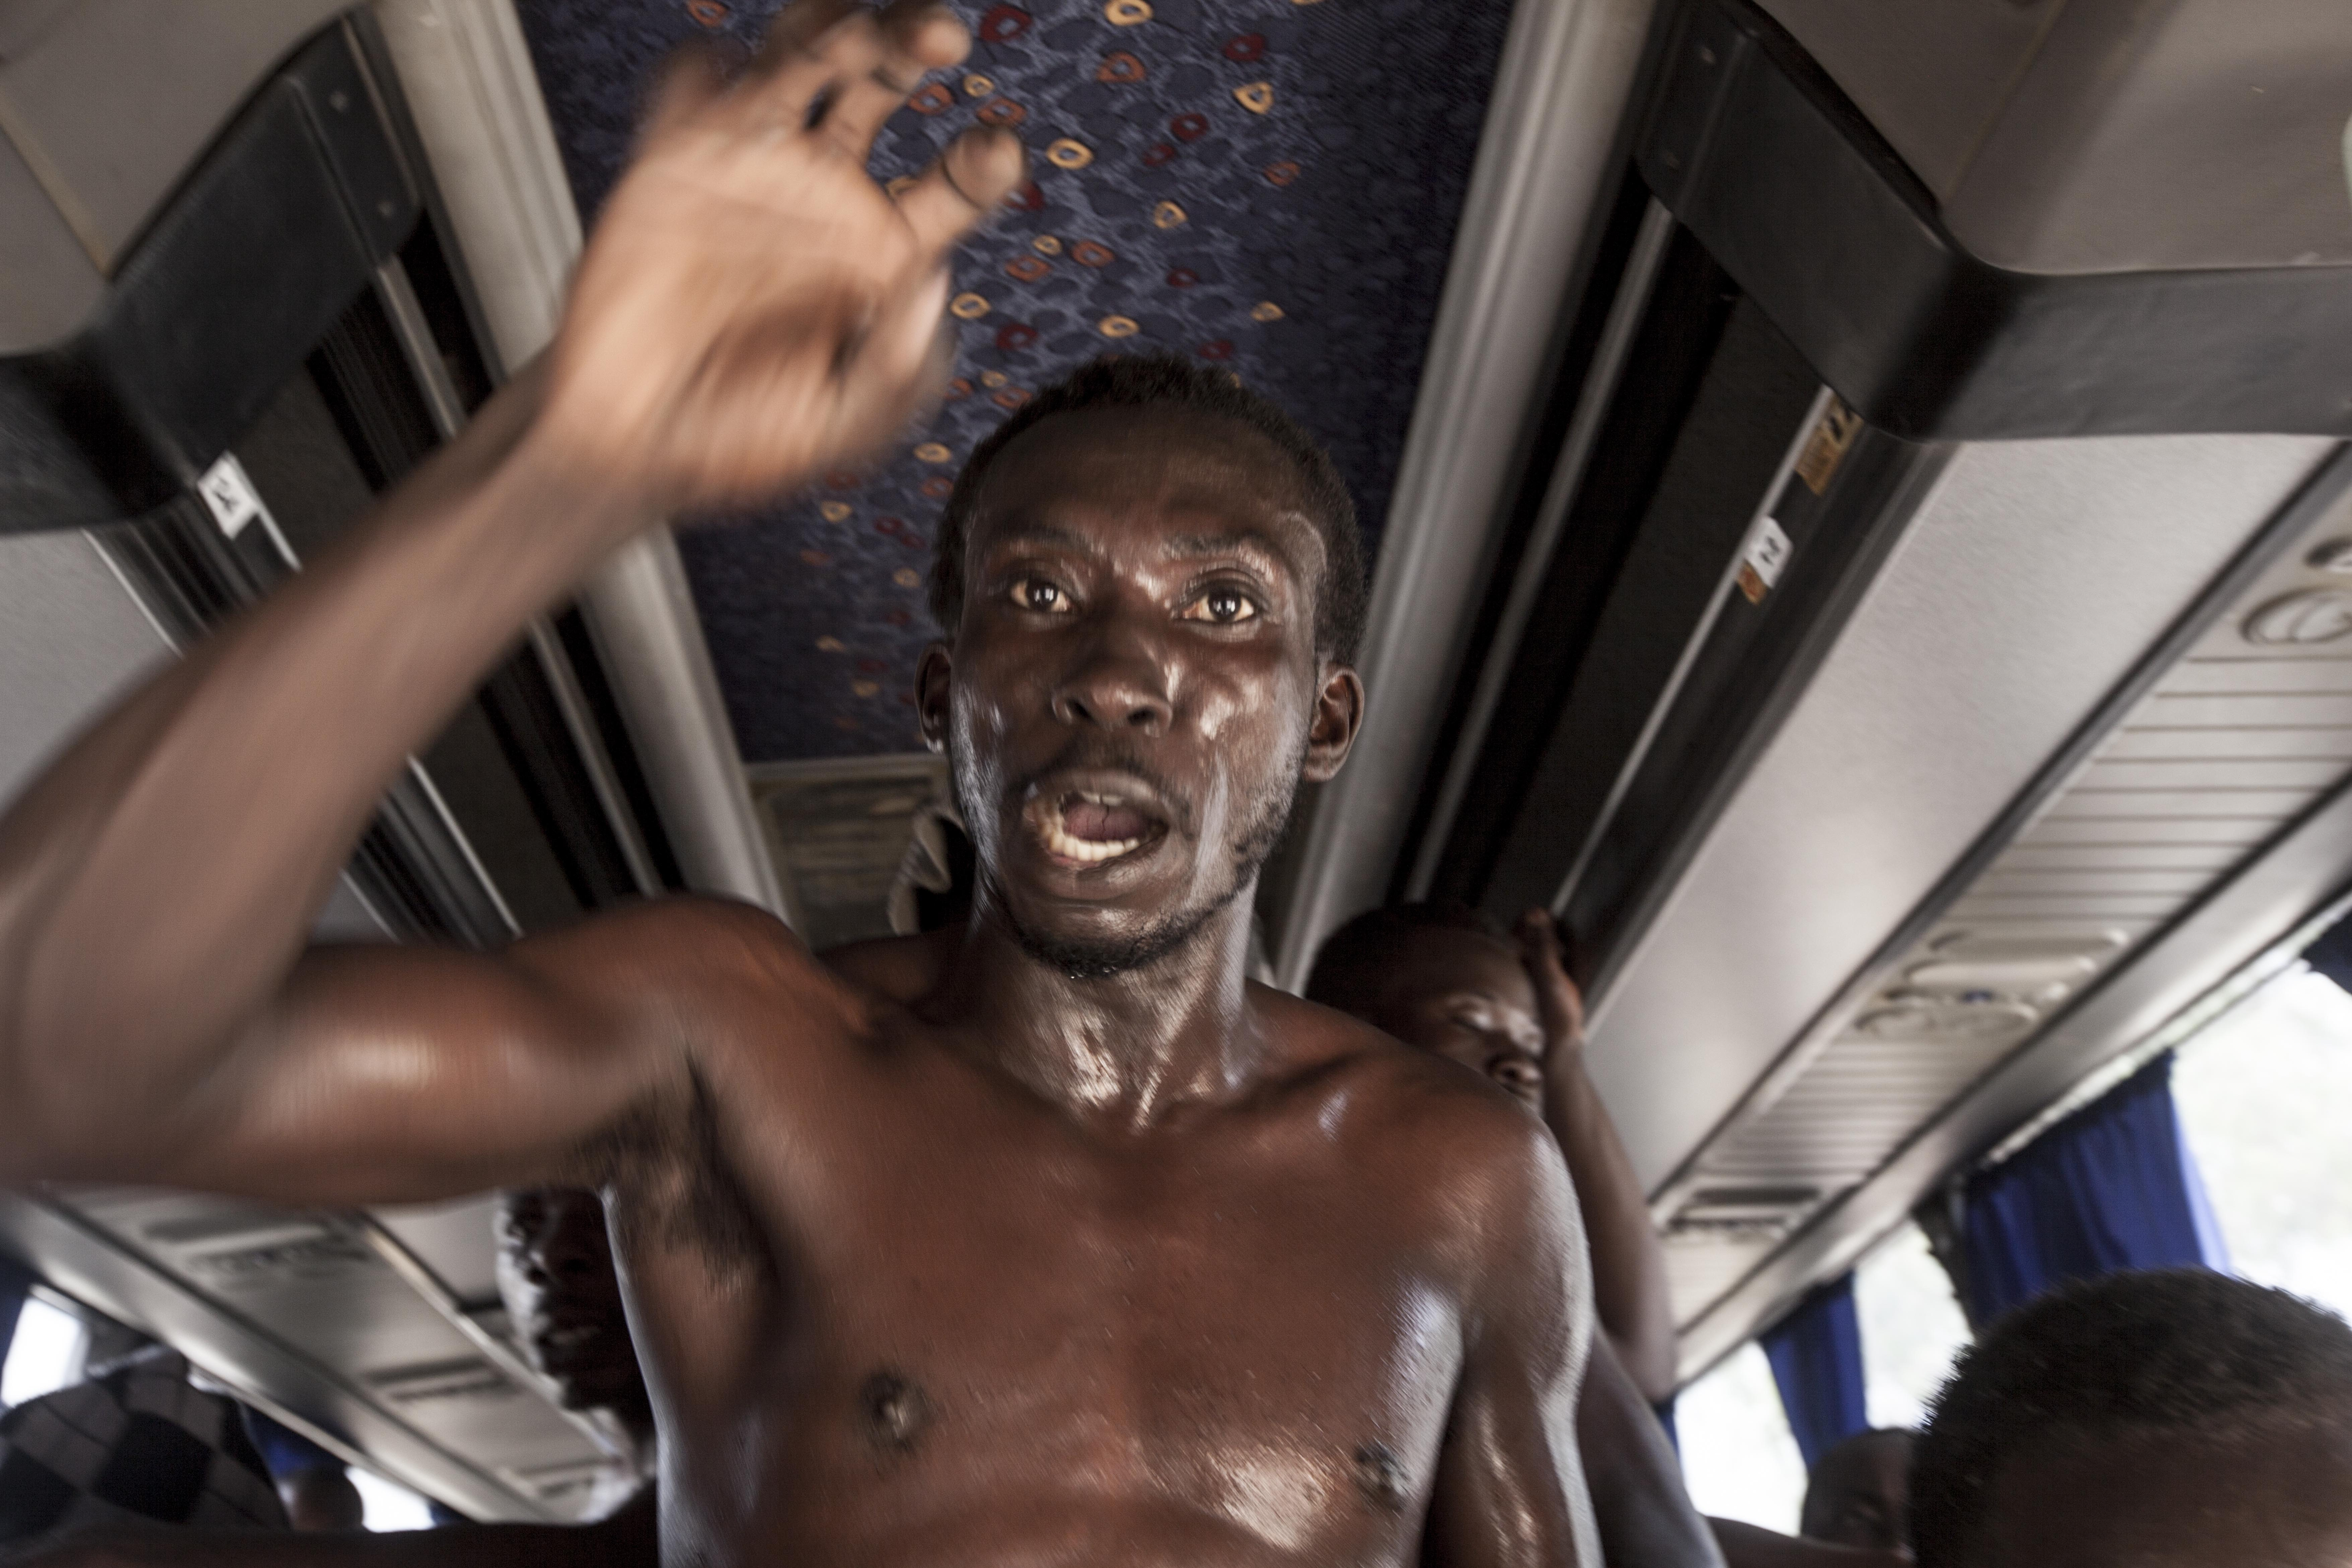 A Sub-Saharan migrant complains as he waits to be transferred from a detention center in Surman, after he was sold by a militia group in the northwest of Libya.